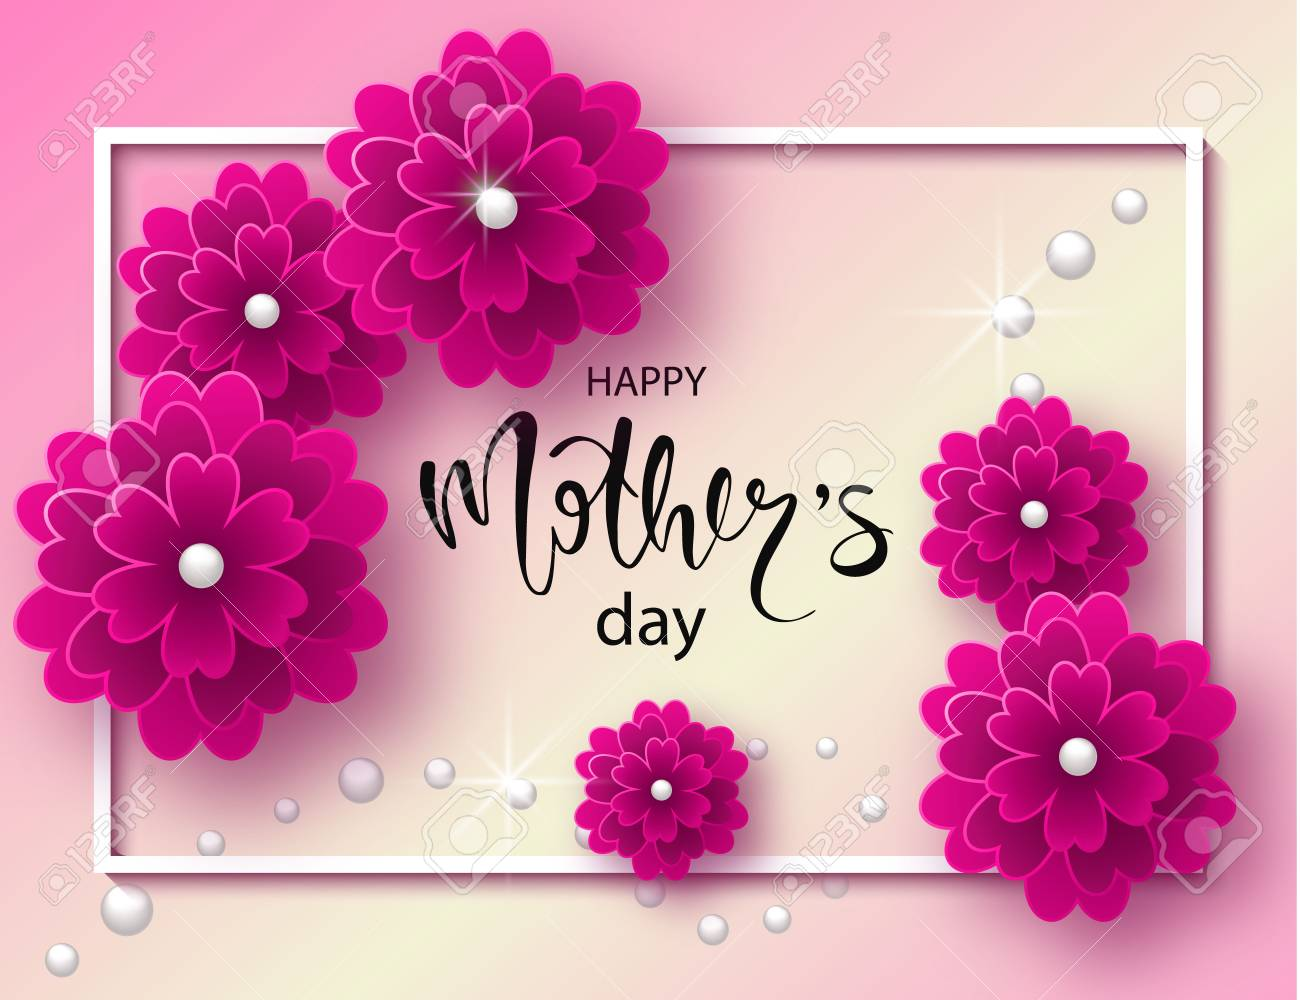 Happy Mothers Day Background With Beautiful Flowers And Beads